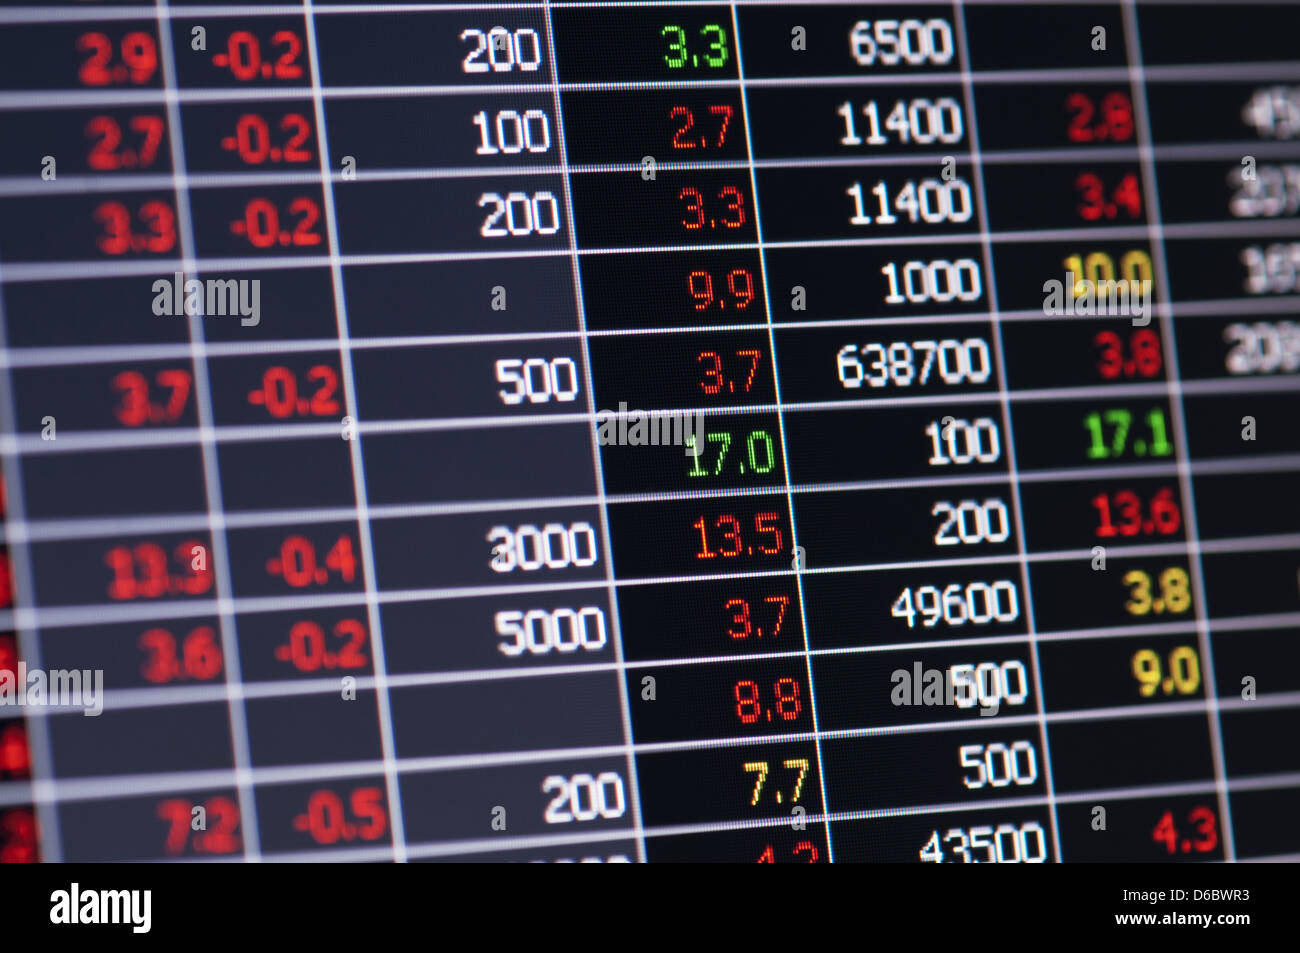 Close-up of stock market values on LCD screen. - Stock Image